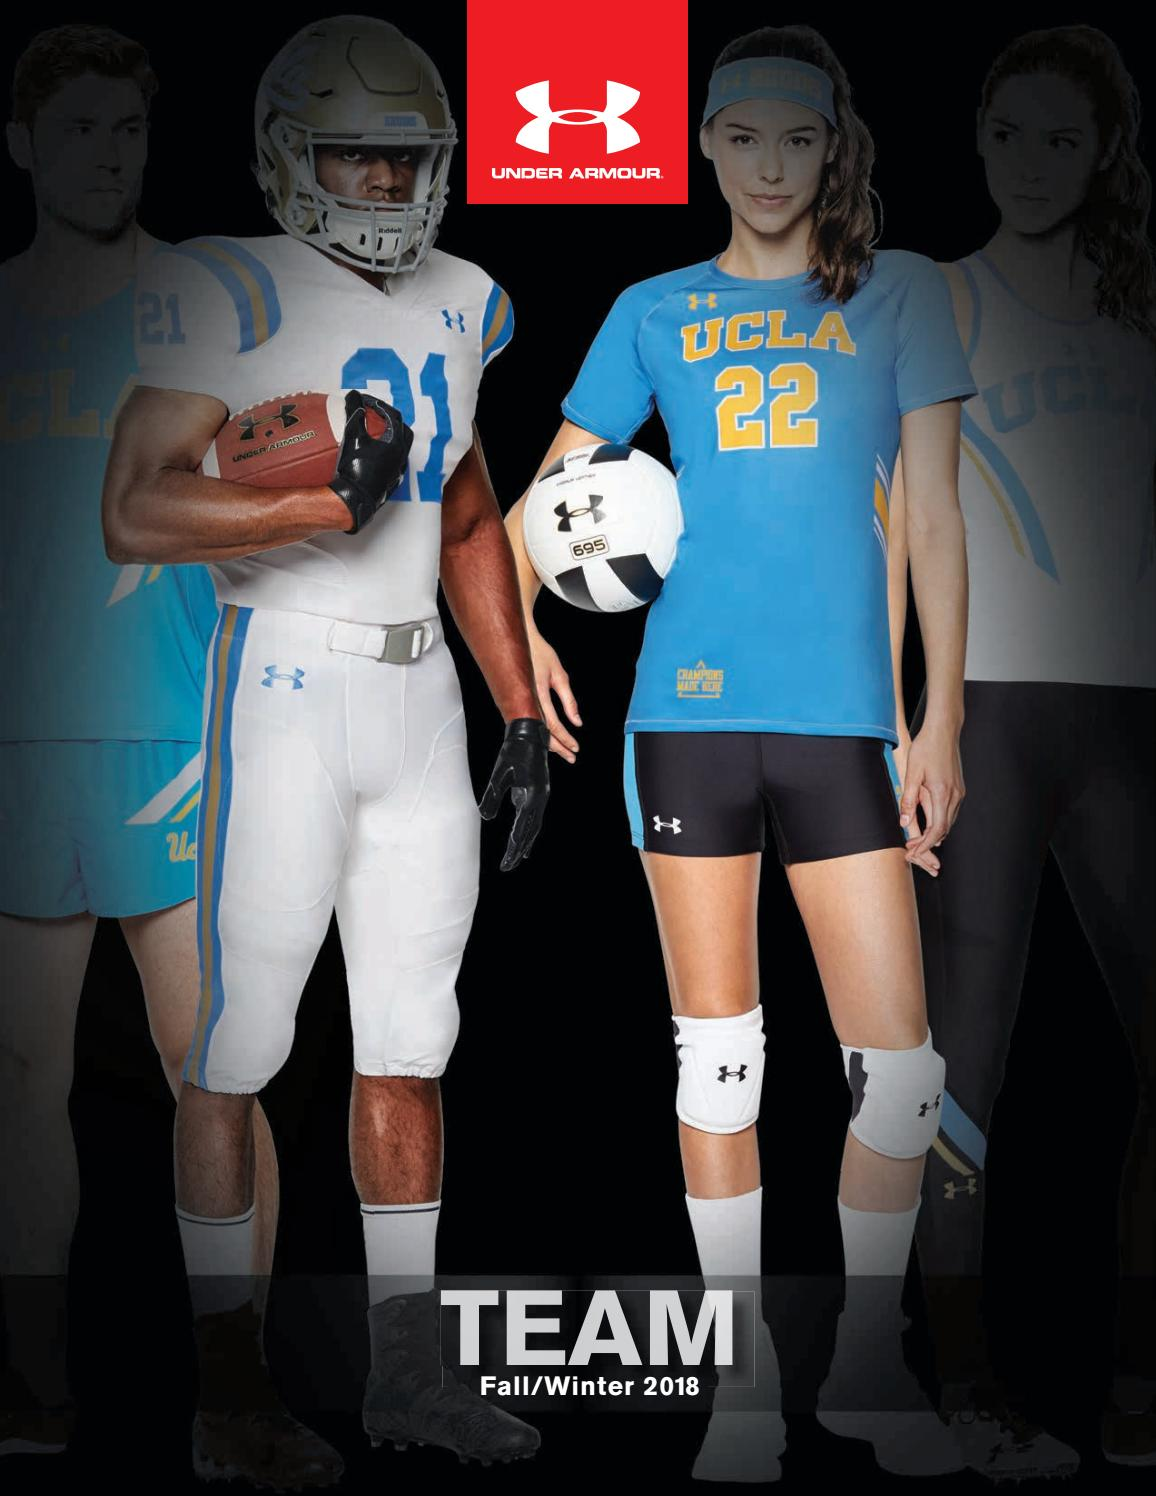 d2222337eeb Under Armour Fall Winter 2018 by Team Connection - issuu